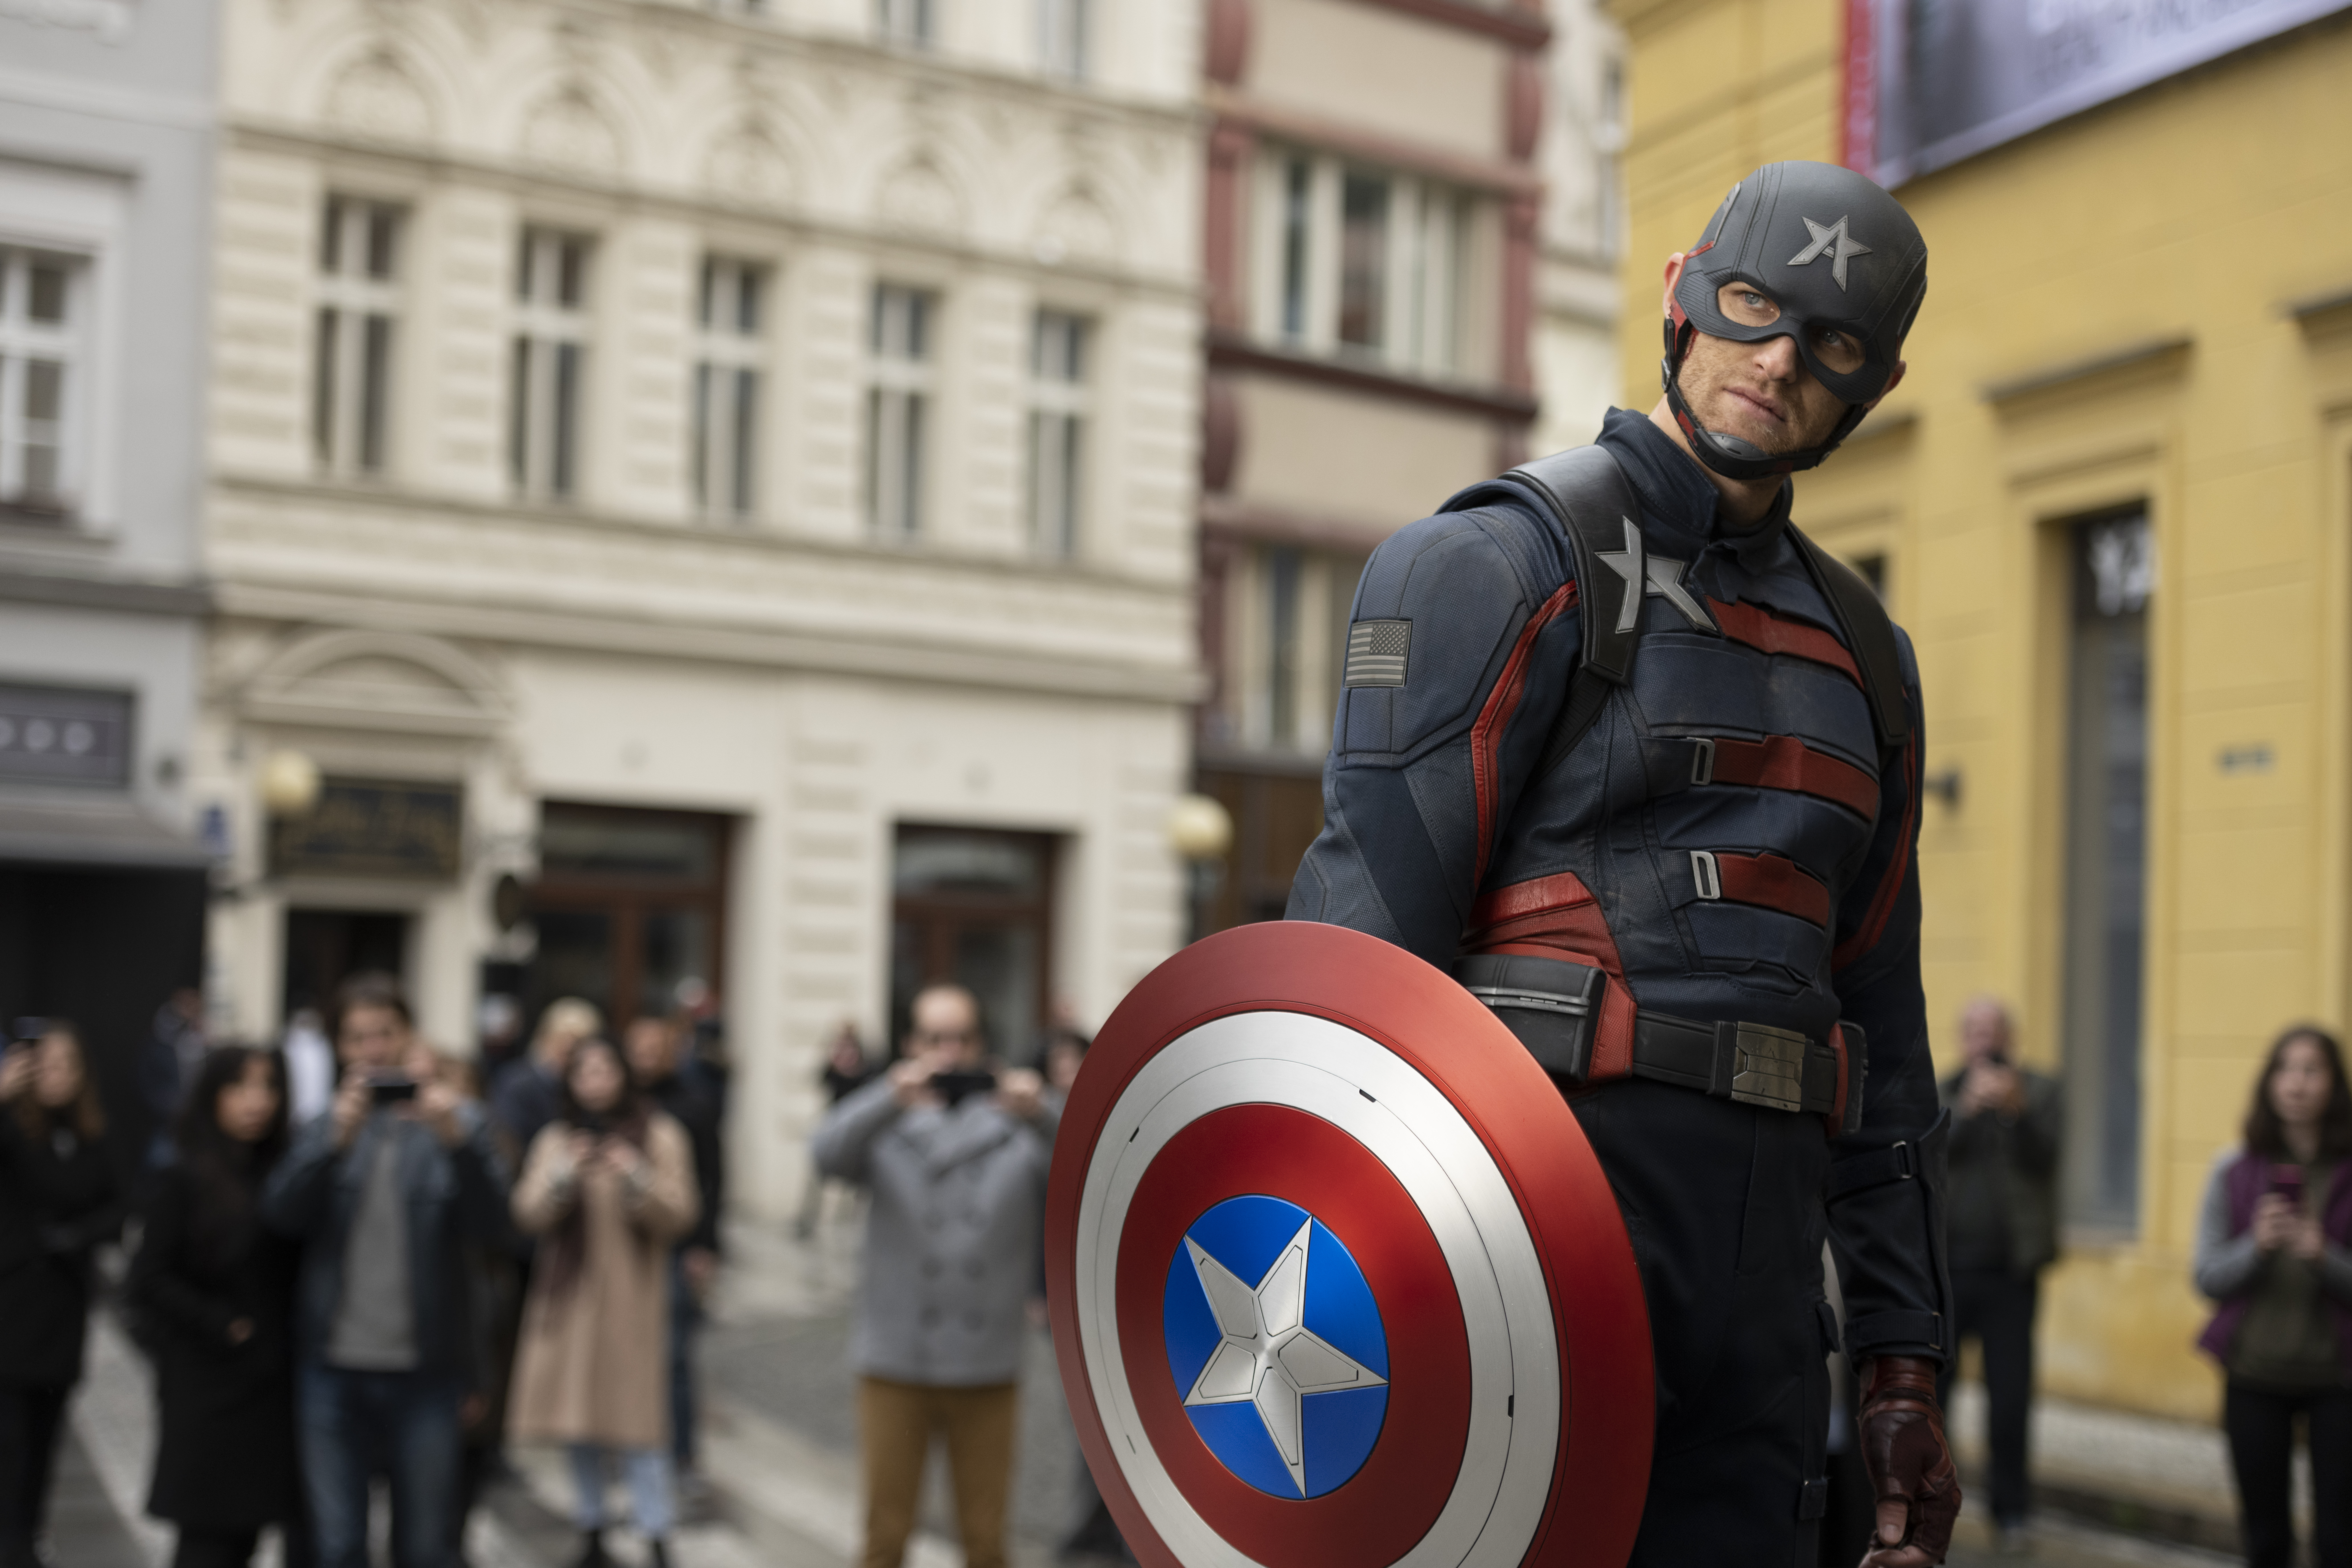 John Walker, the new Captain America in The Falcon and the Winter Soldier, looks askance at the aghast crowd around him